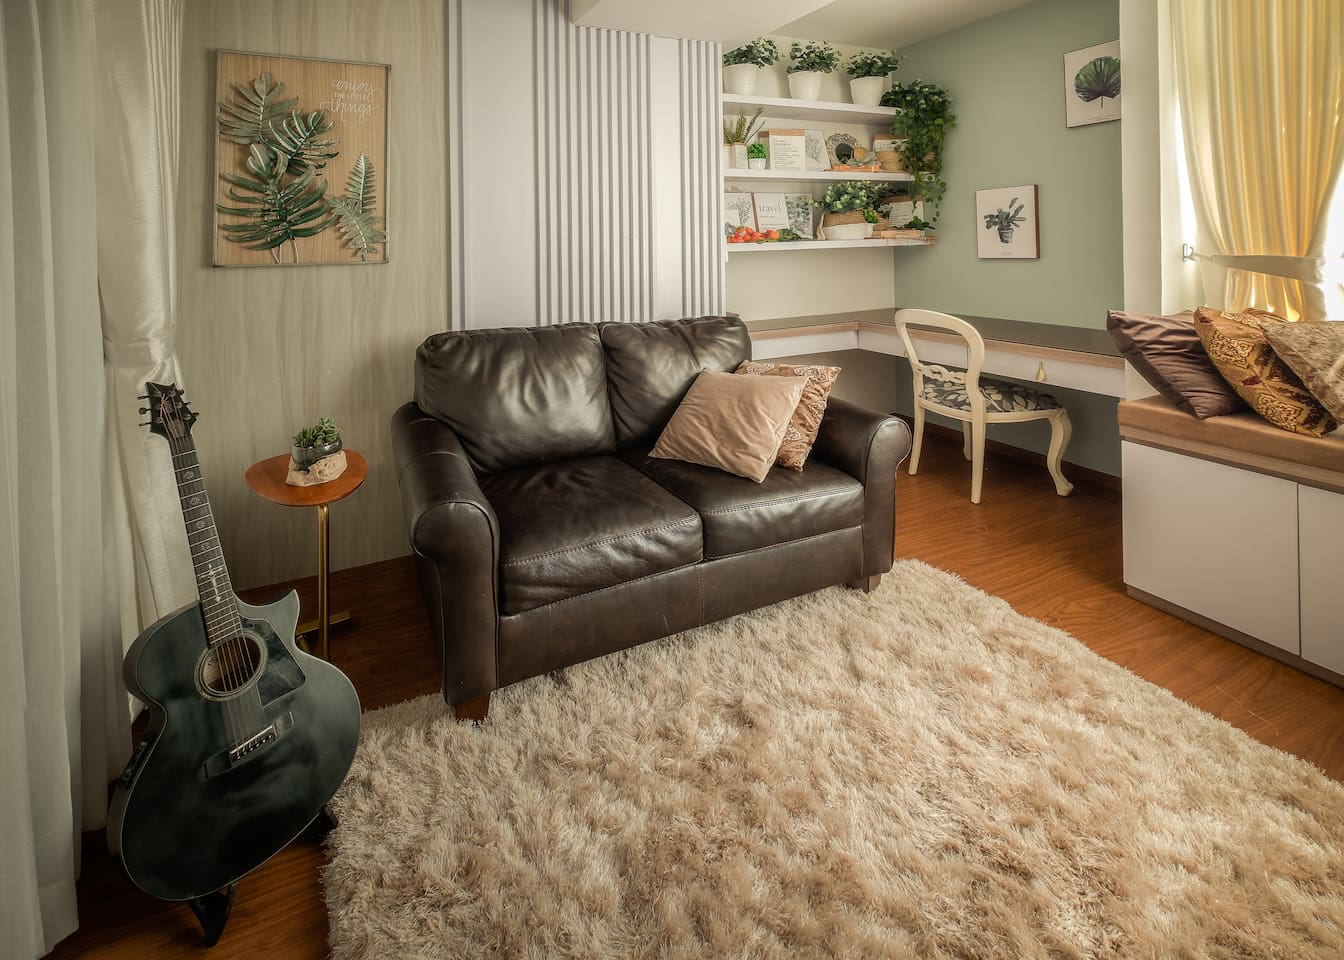 ★A really comfy and well decorated living room with genuine leather couch ★ shaggy rug ★ with a decent home theater system ★ NETFLIX USA, and an acoustic guitar!